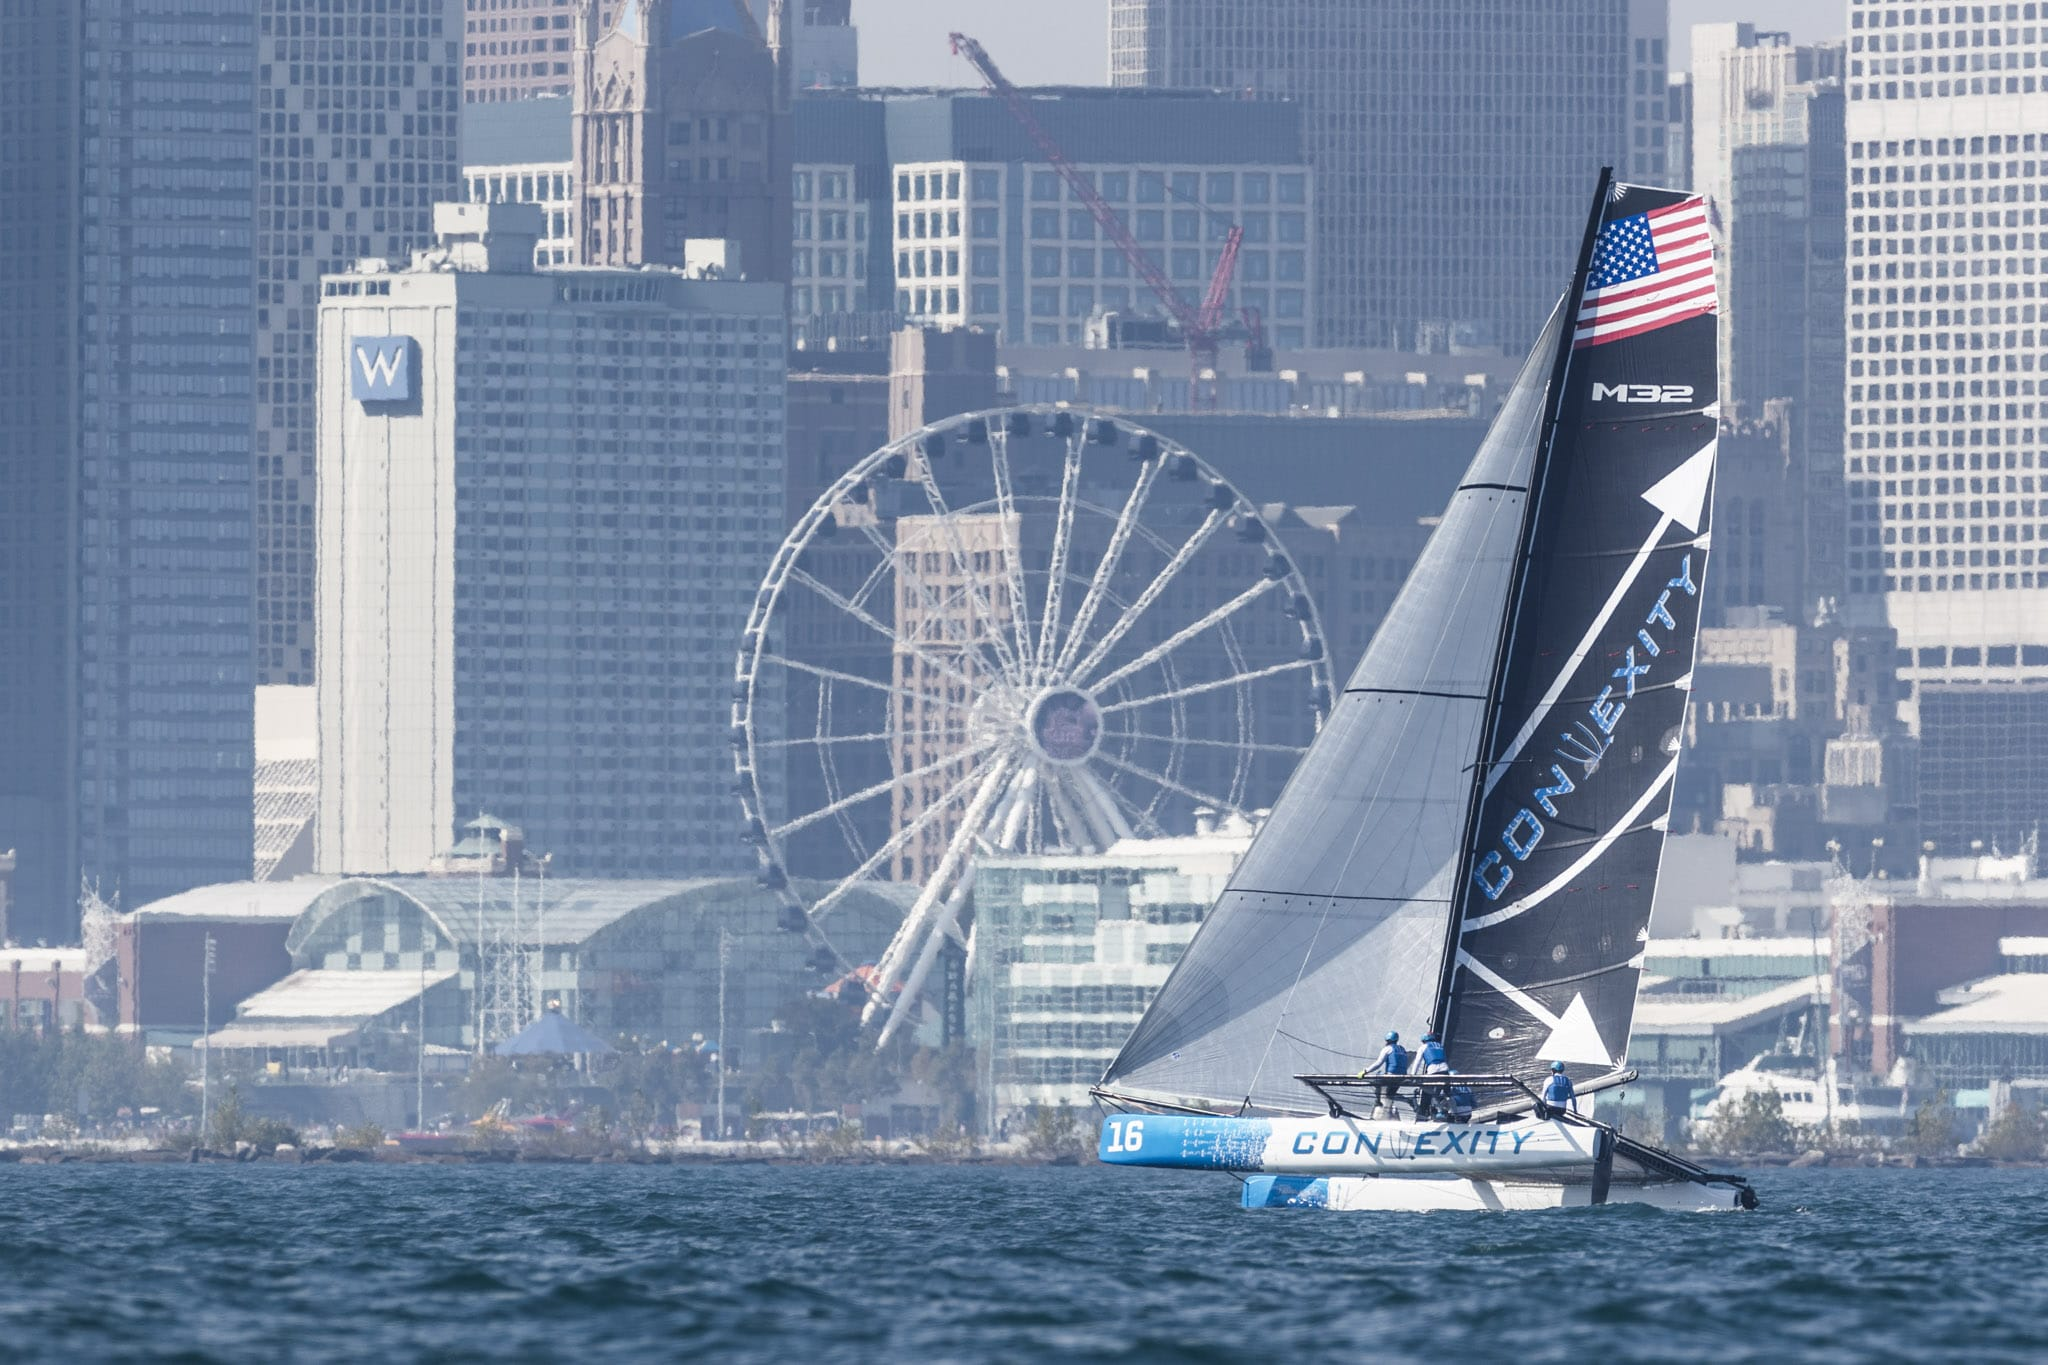 m32 north america championship day 1 convexity